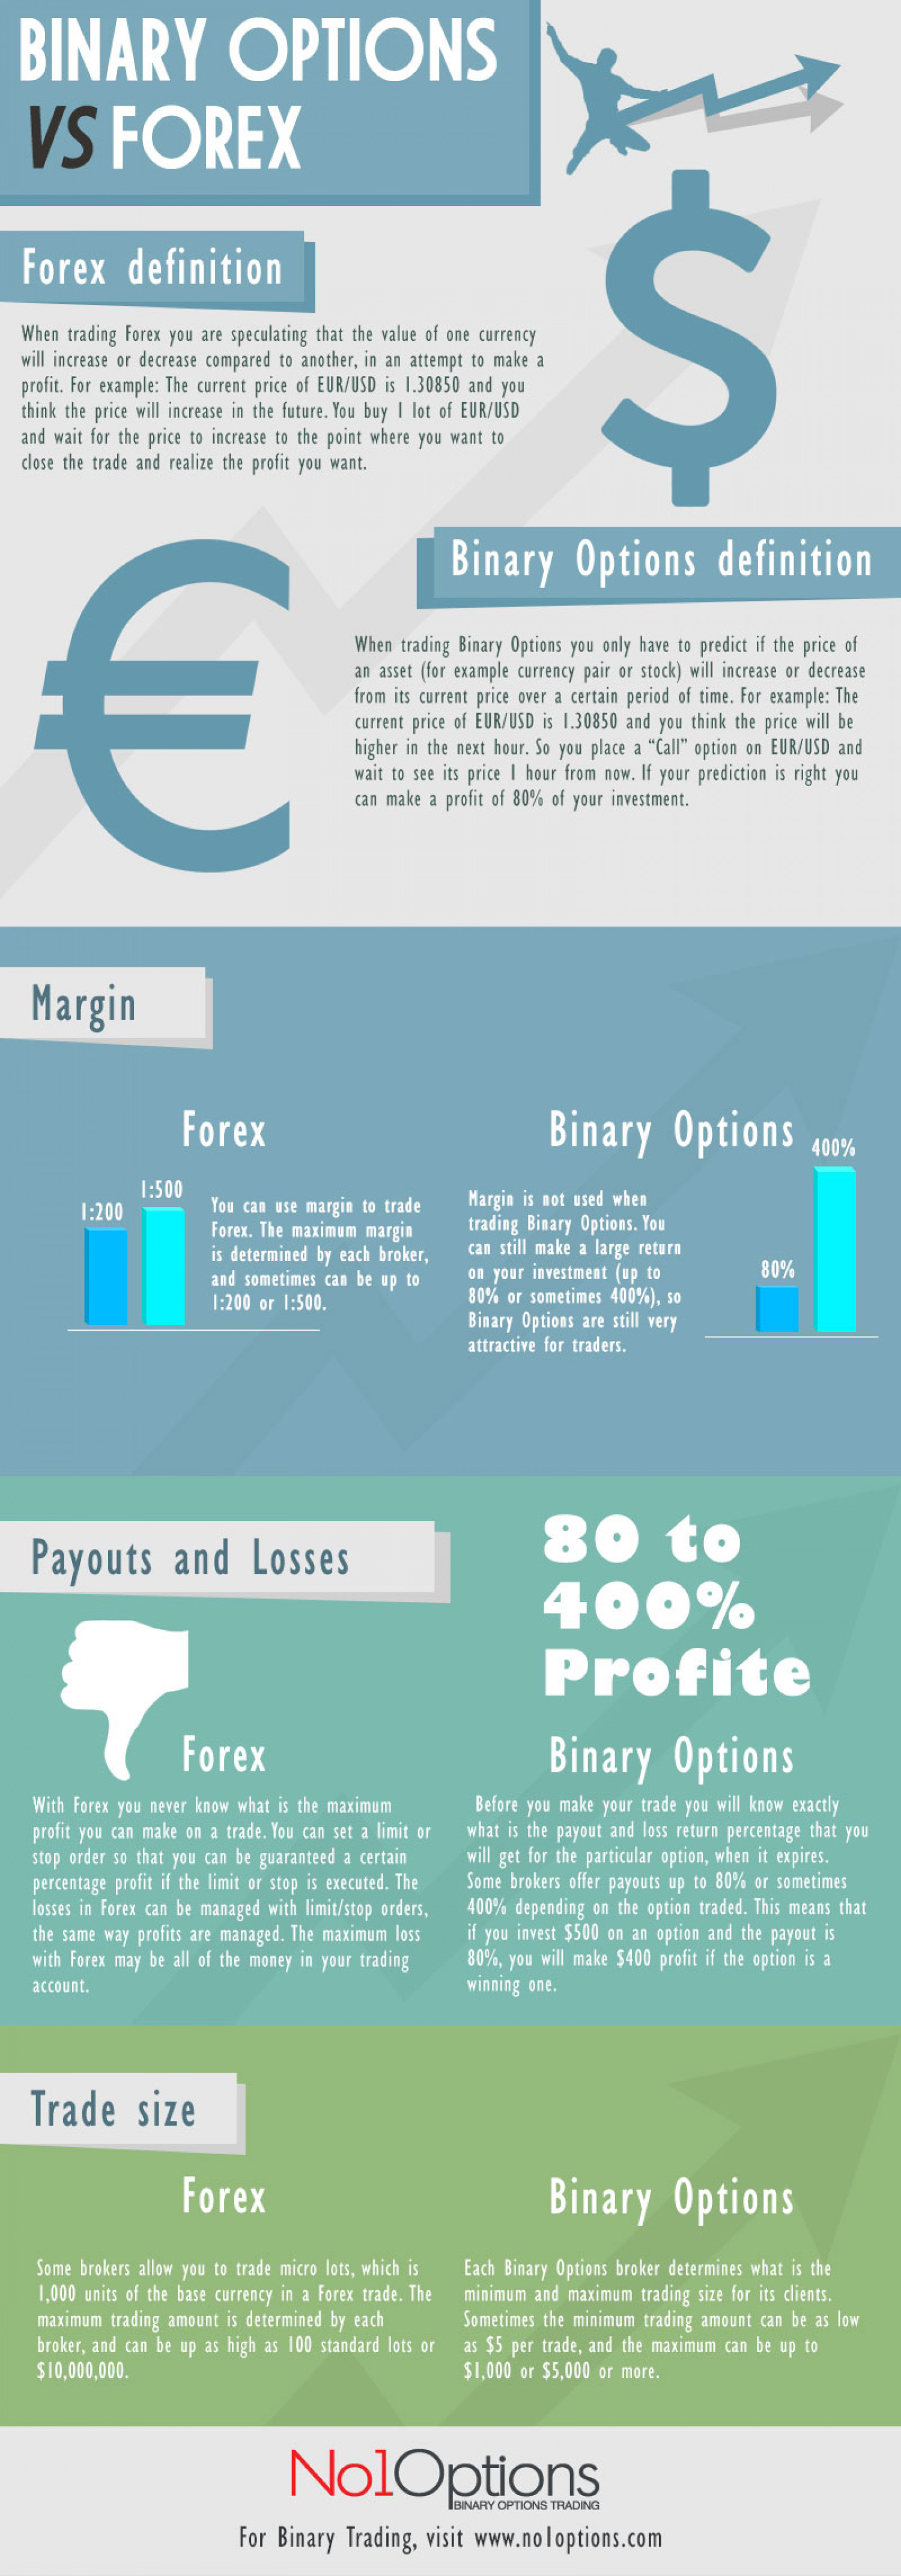 forex brokers that offer binary options